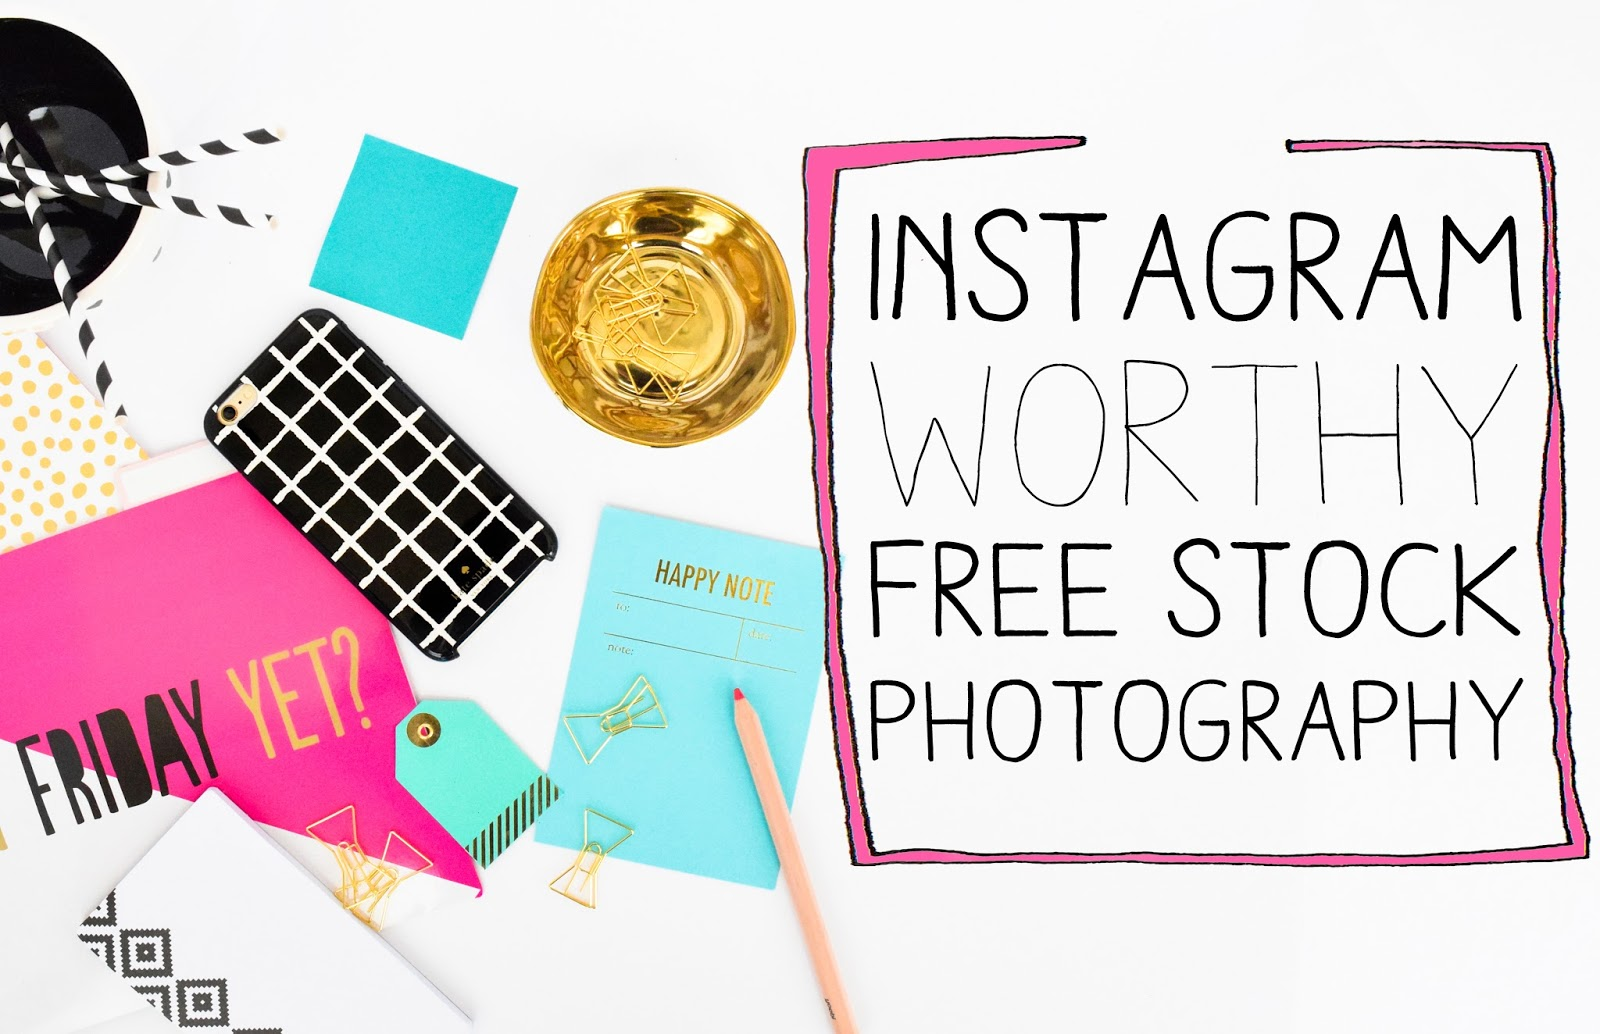 Free Photography Stock Instagram Worthy Free Stock Photography Sites Creative Moxie Studio